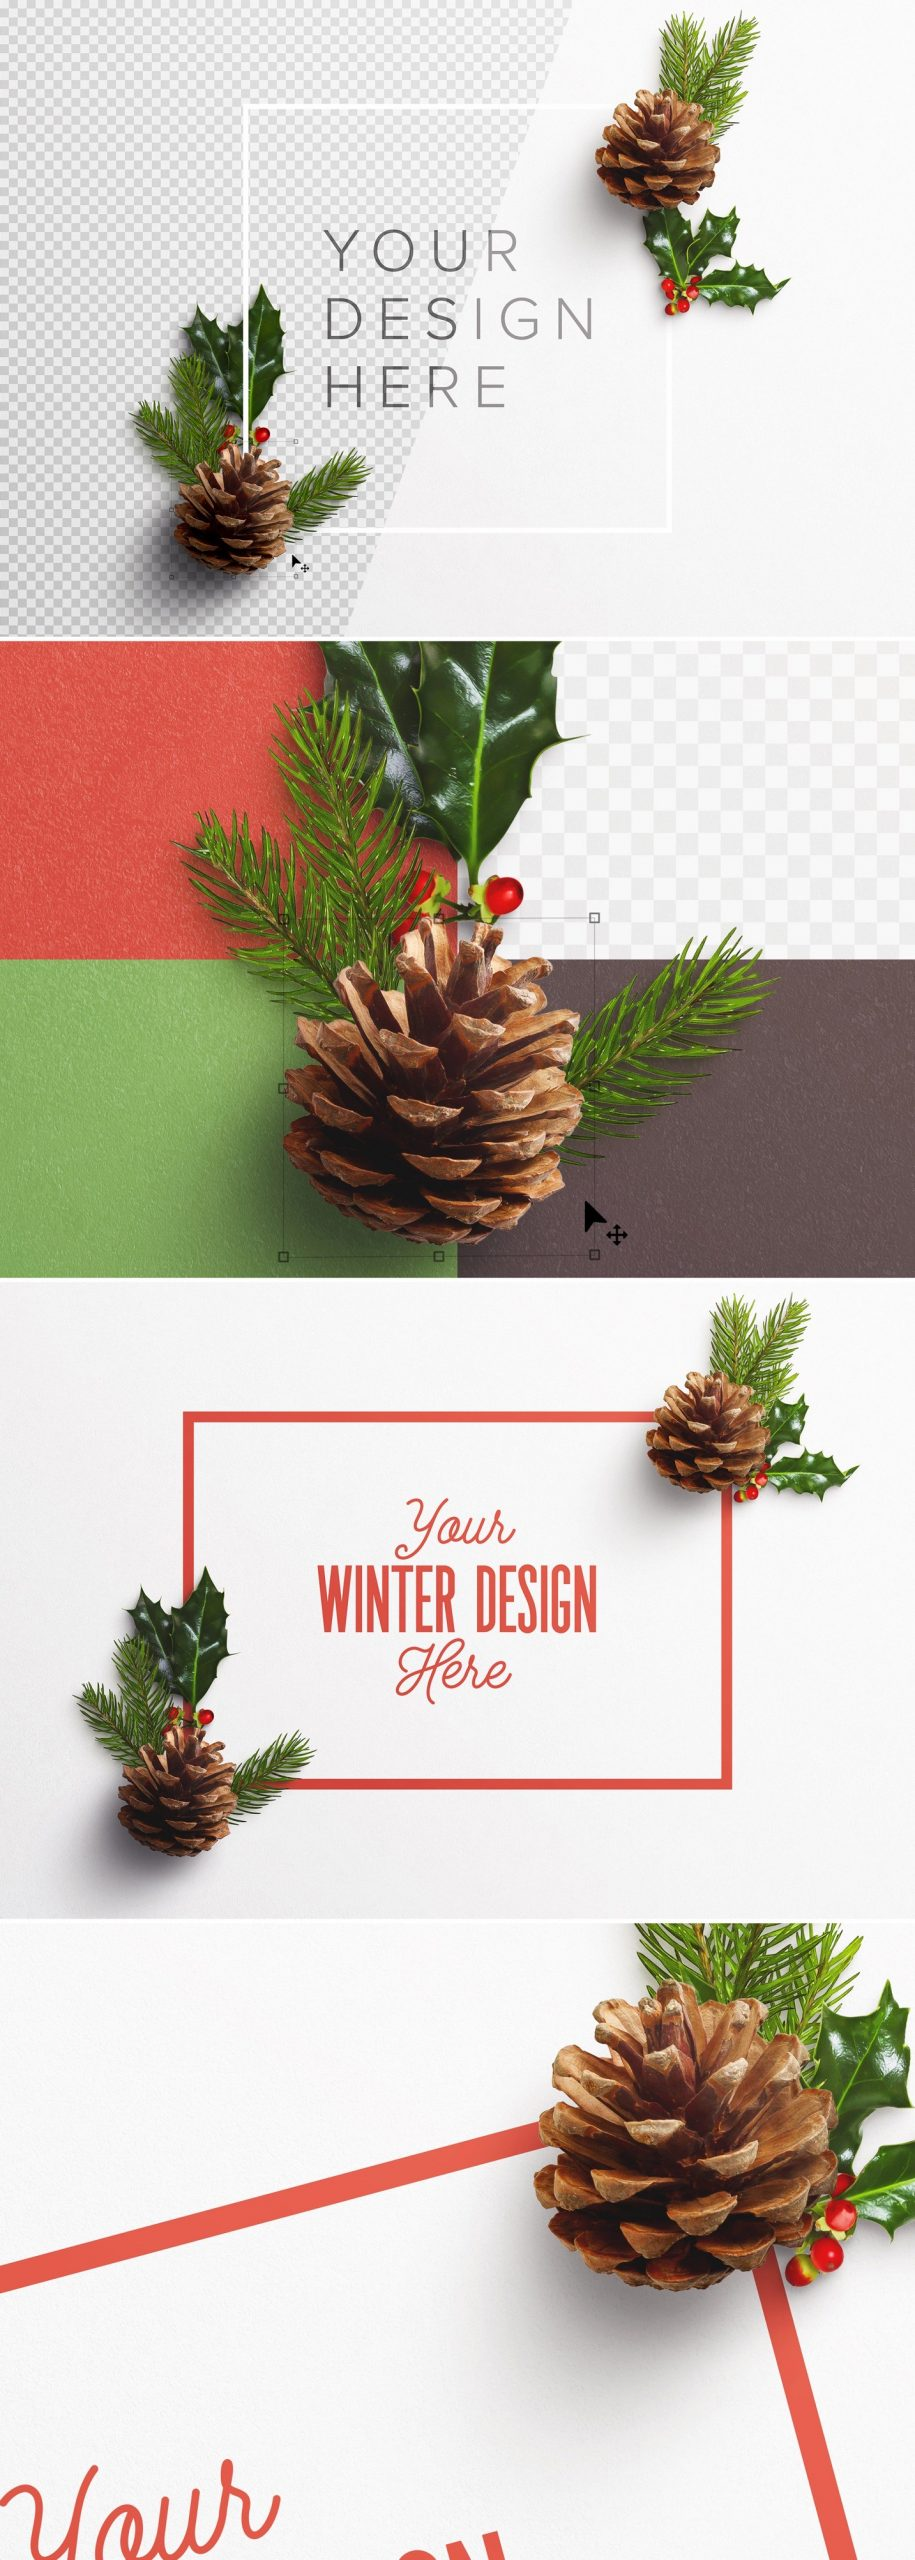 winter nature frame scene mockup preview1 1 scaled